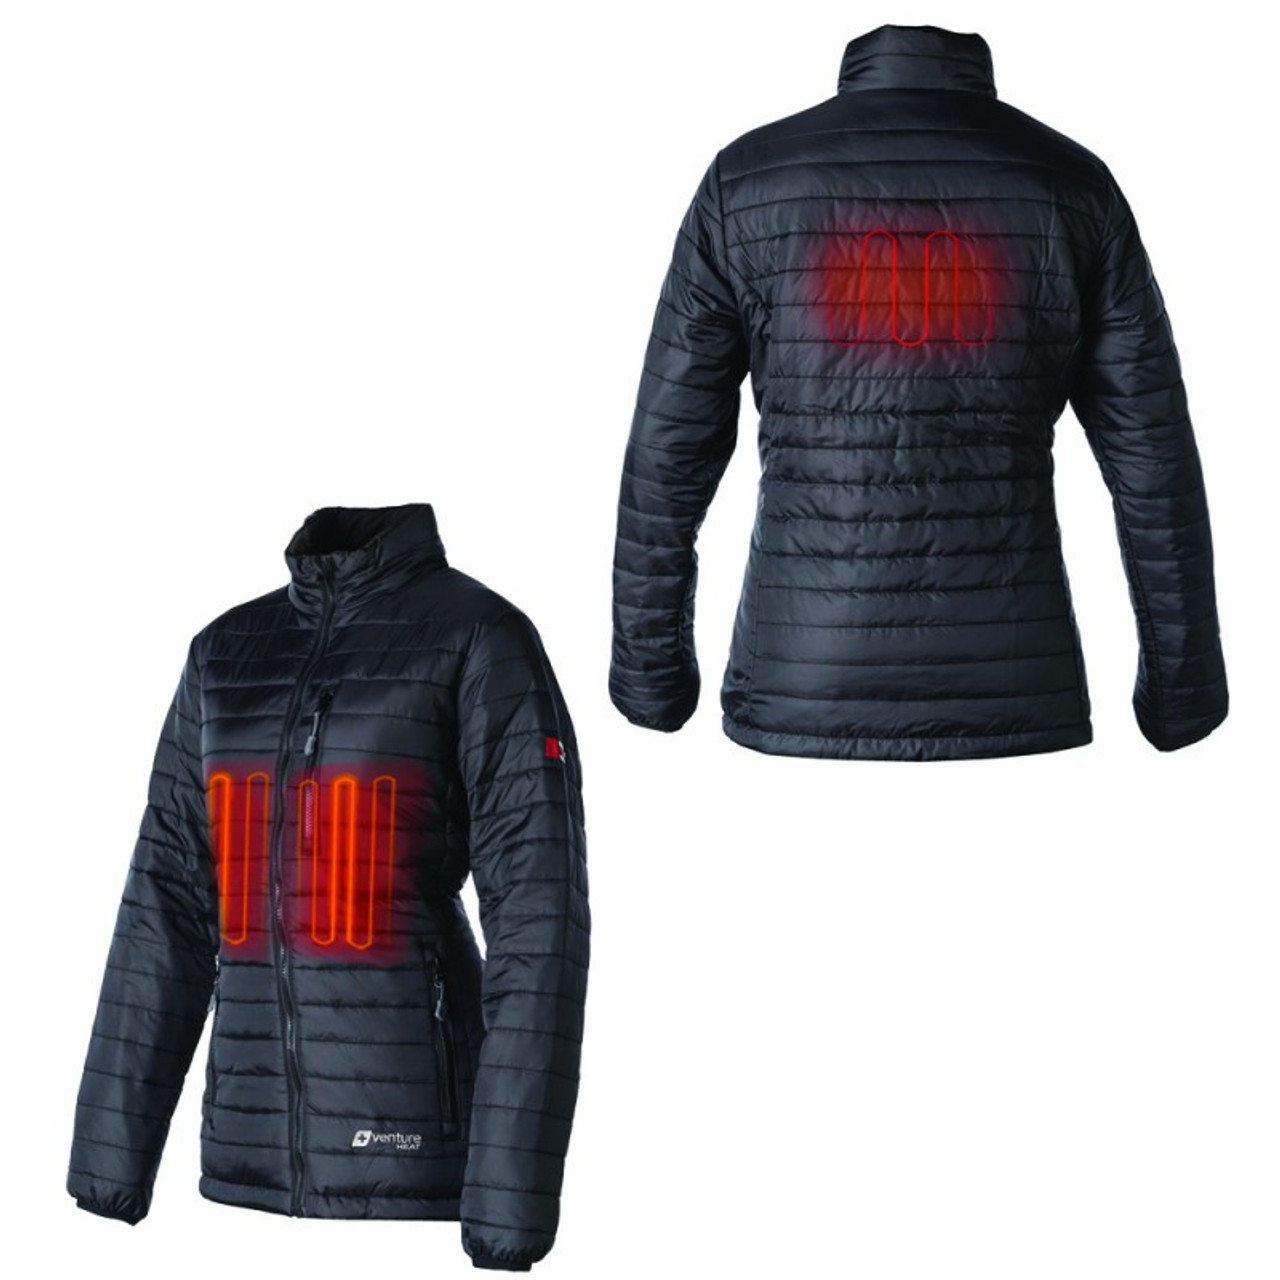 Womens Heated Clothing >> Women S Heated Insulated Jacket Batteries Not Included